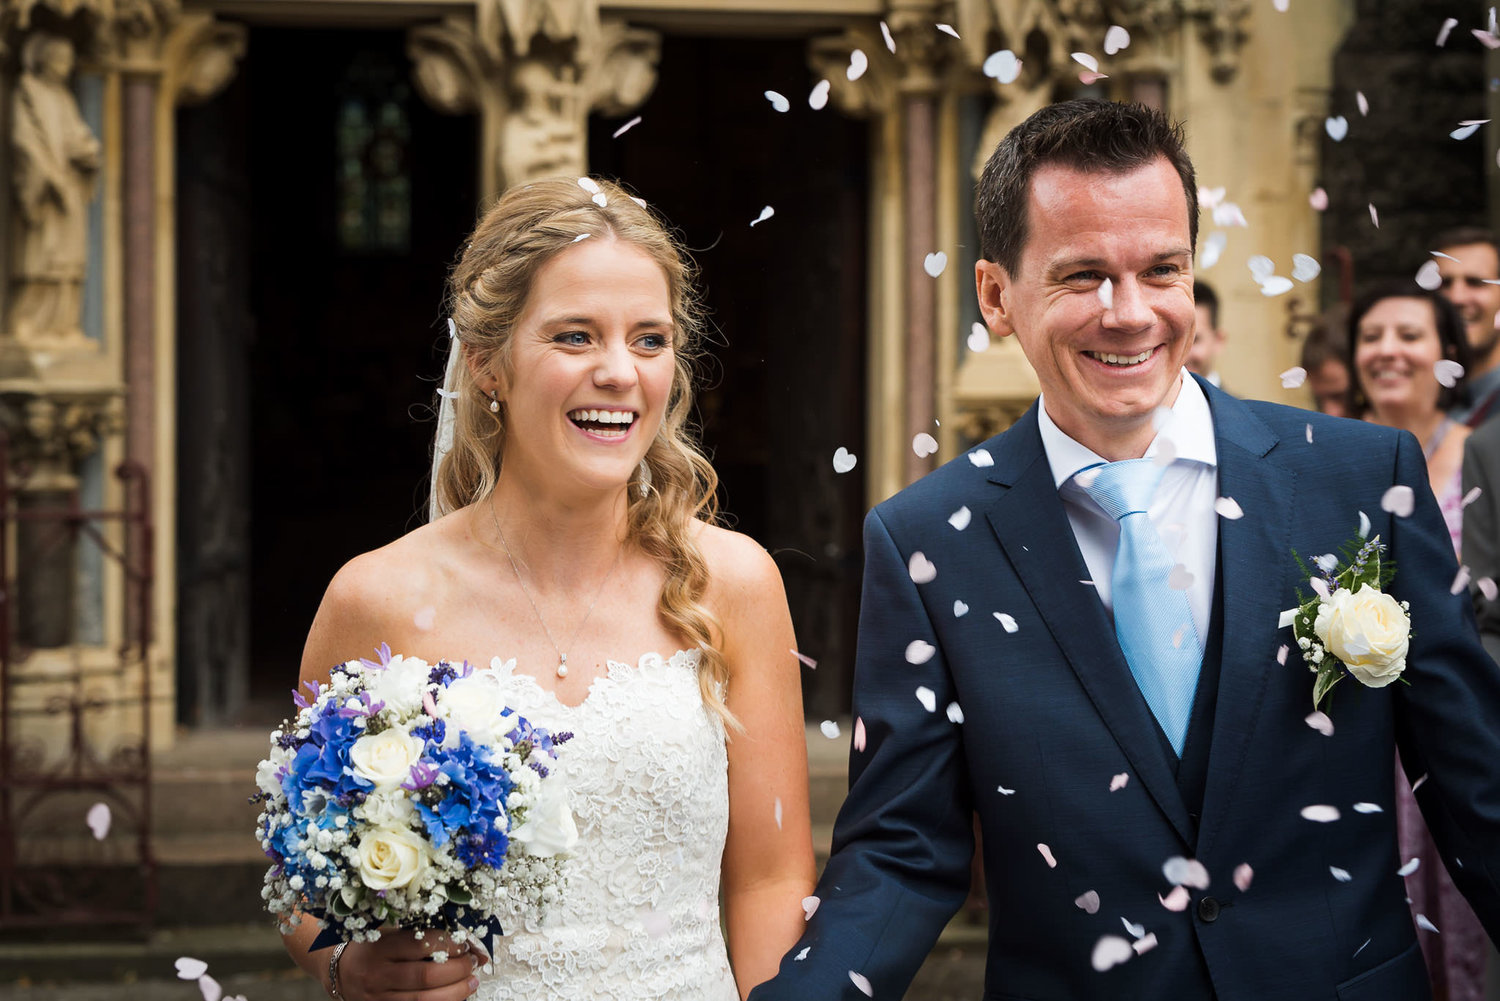 2017 06 registry office wedding vows examples - Nc 20170723 2017 07 23_sophie And Jp Wedding